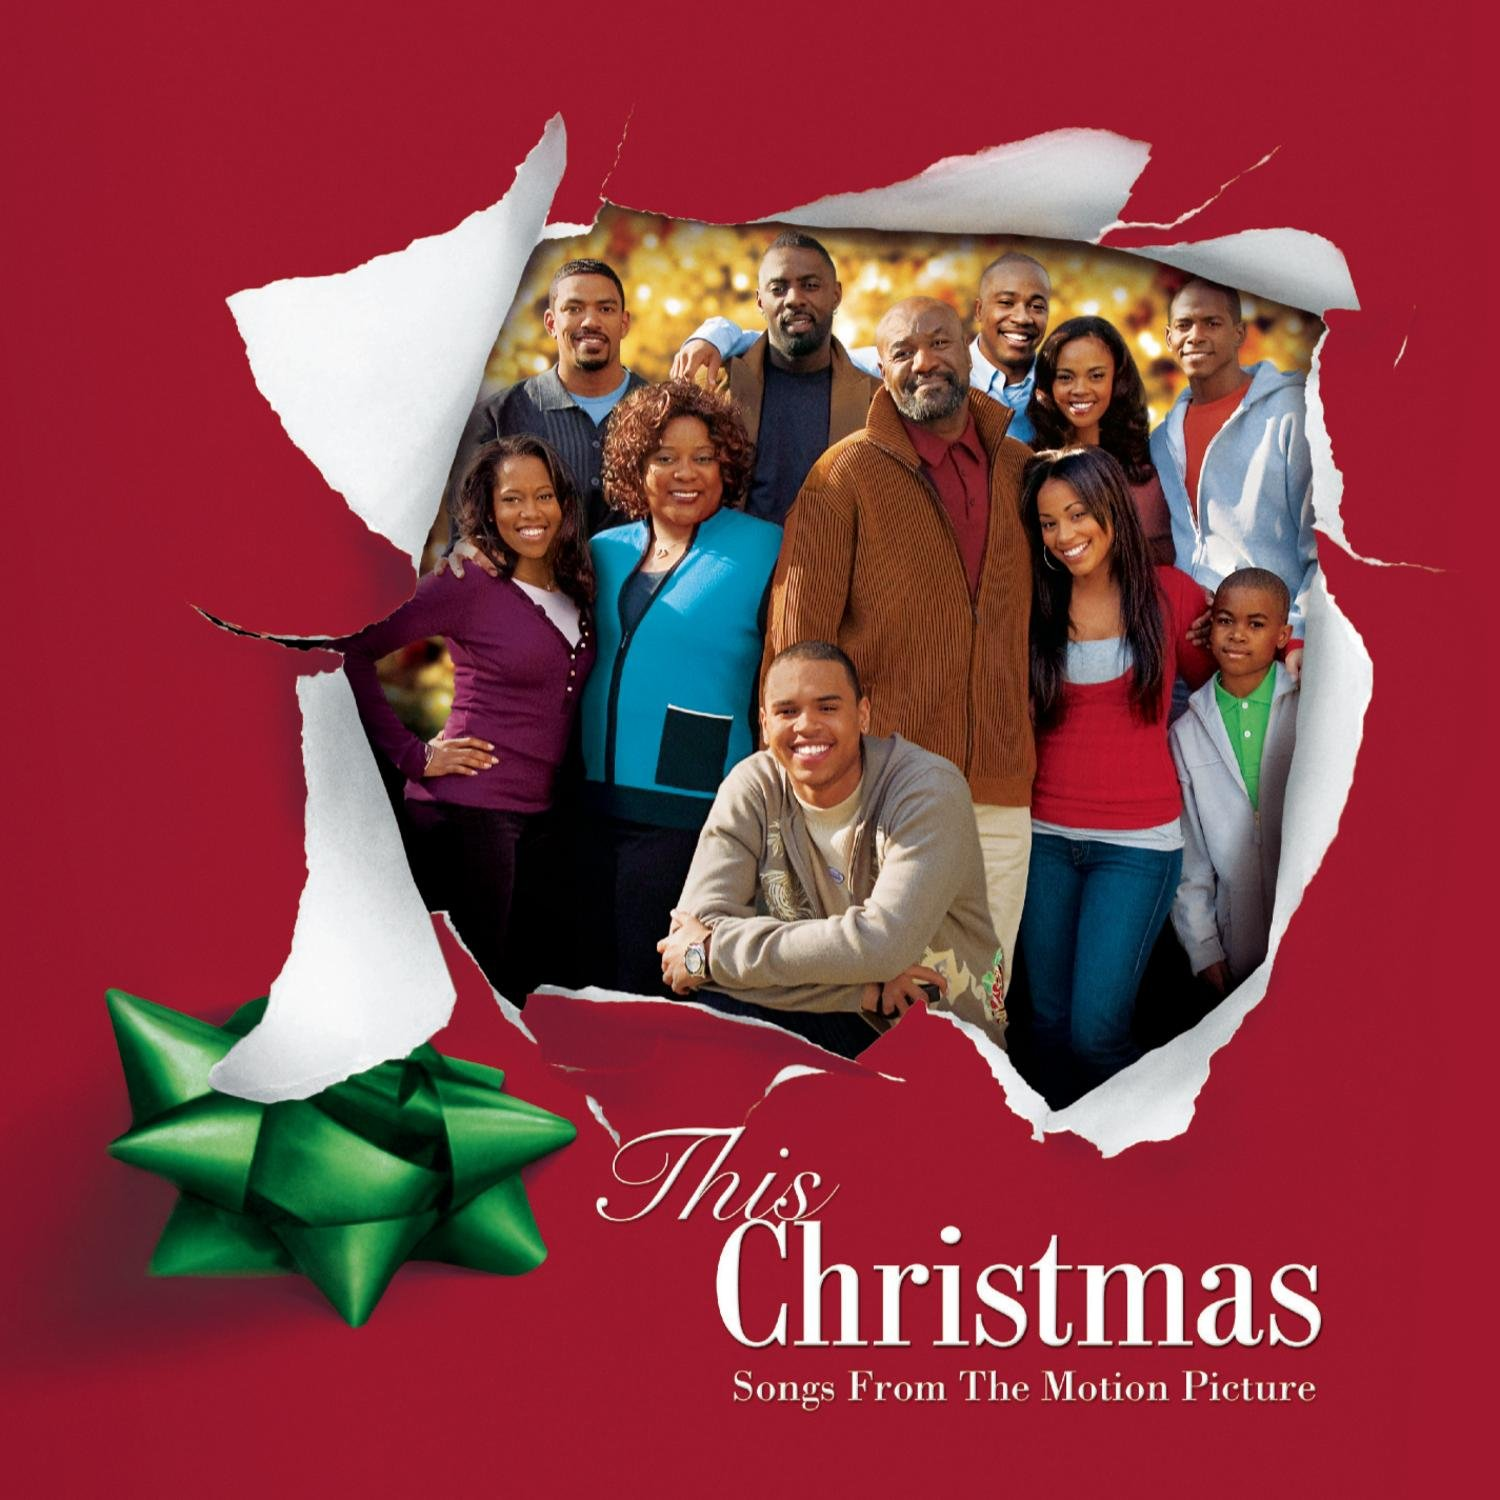 This Christmas - Soundtrack: Amazon.de: Musik